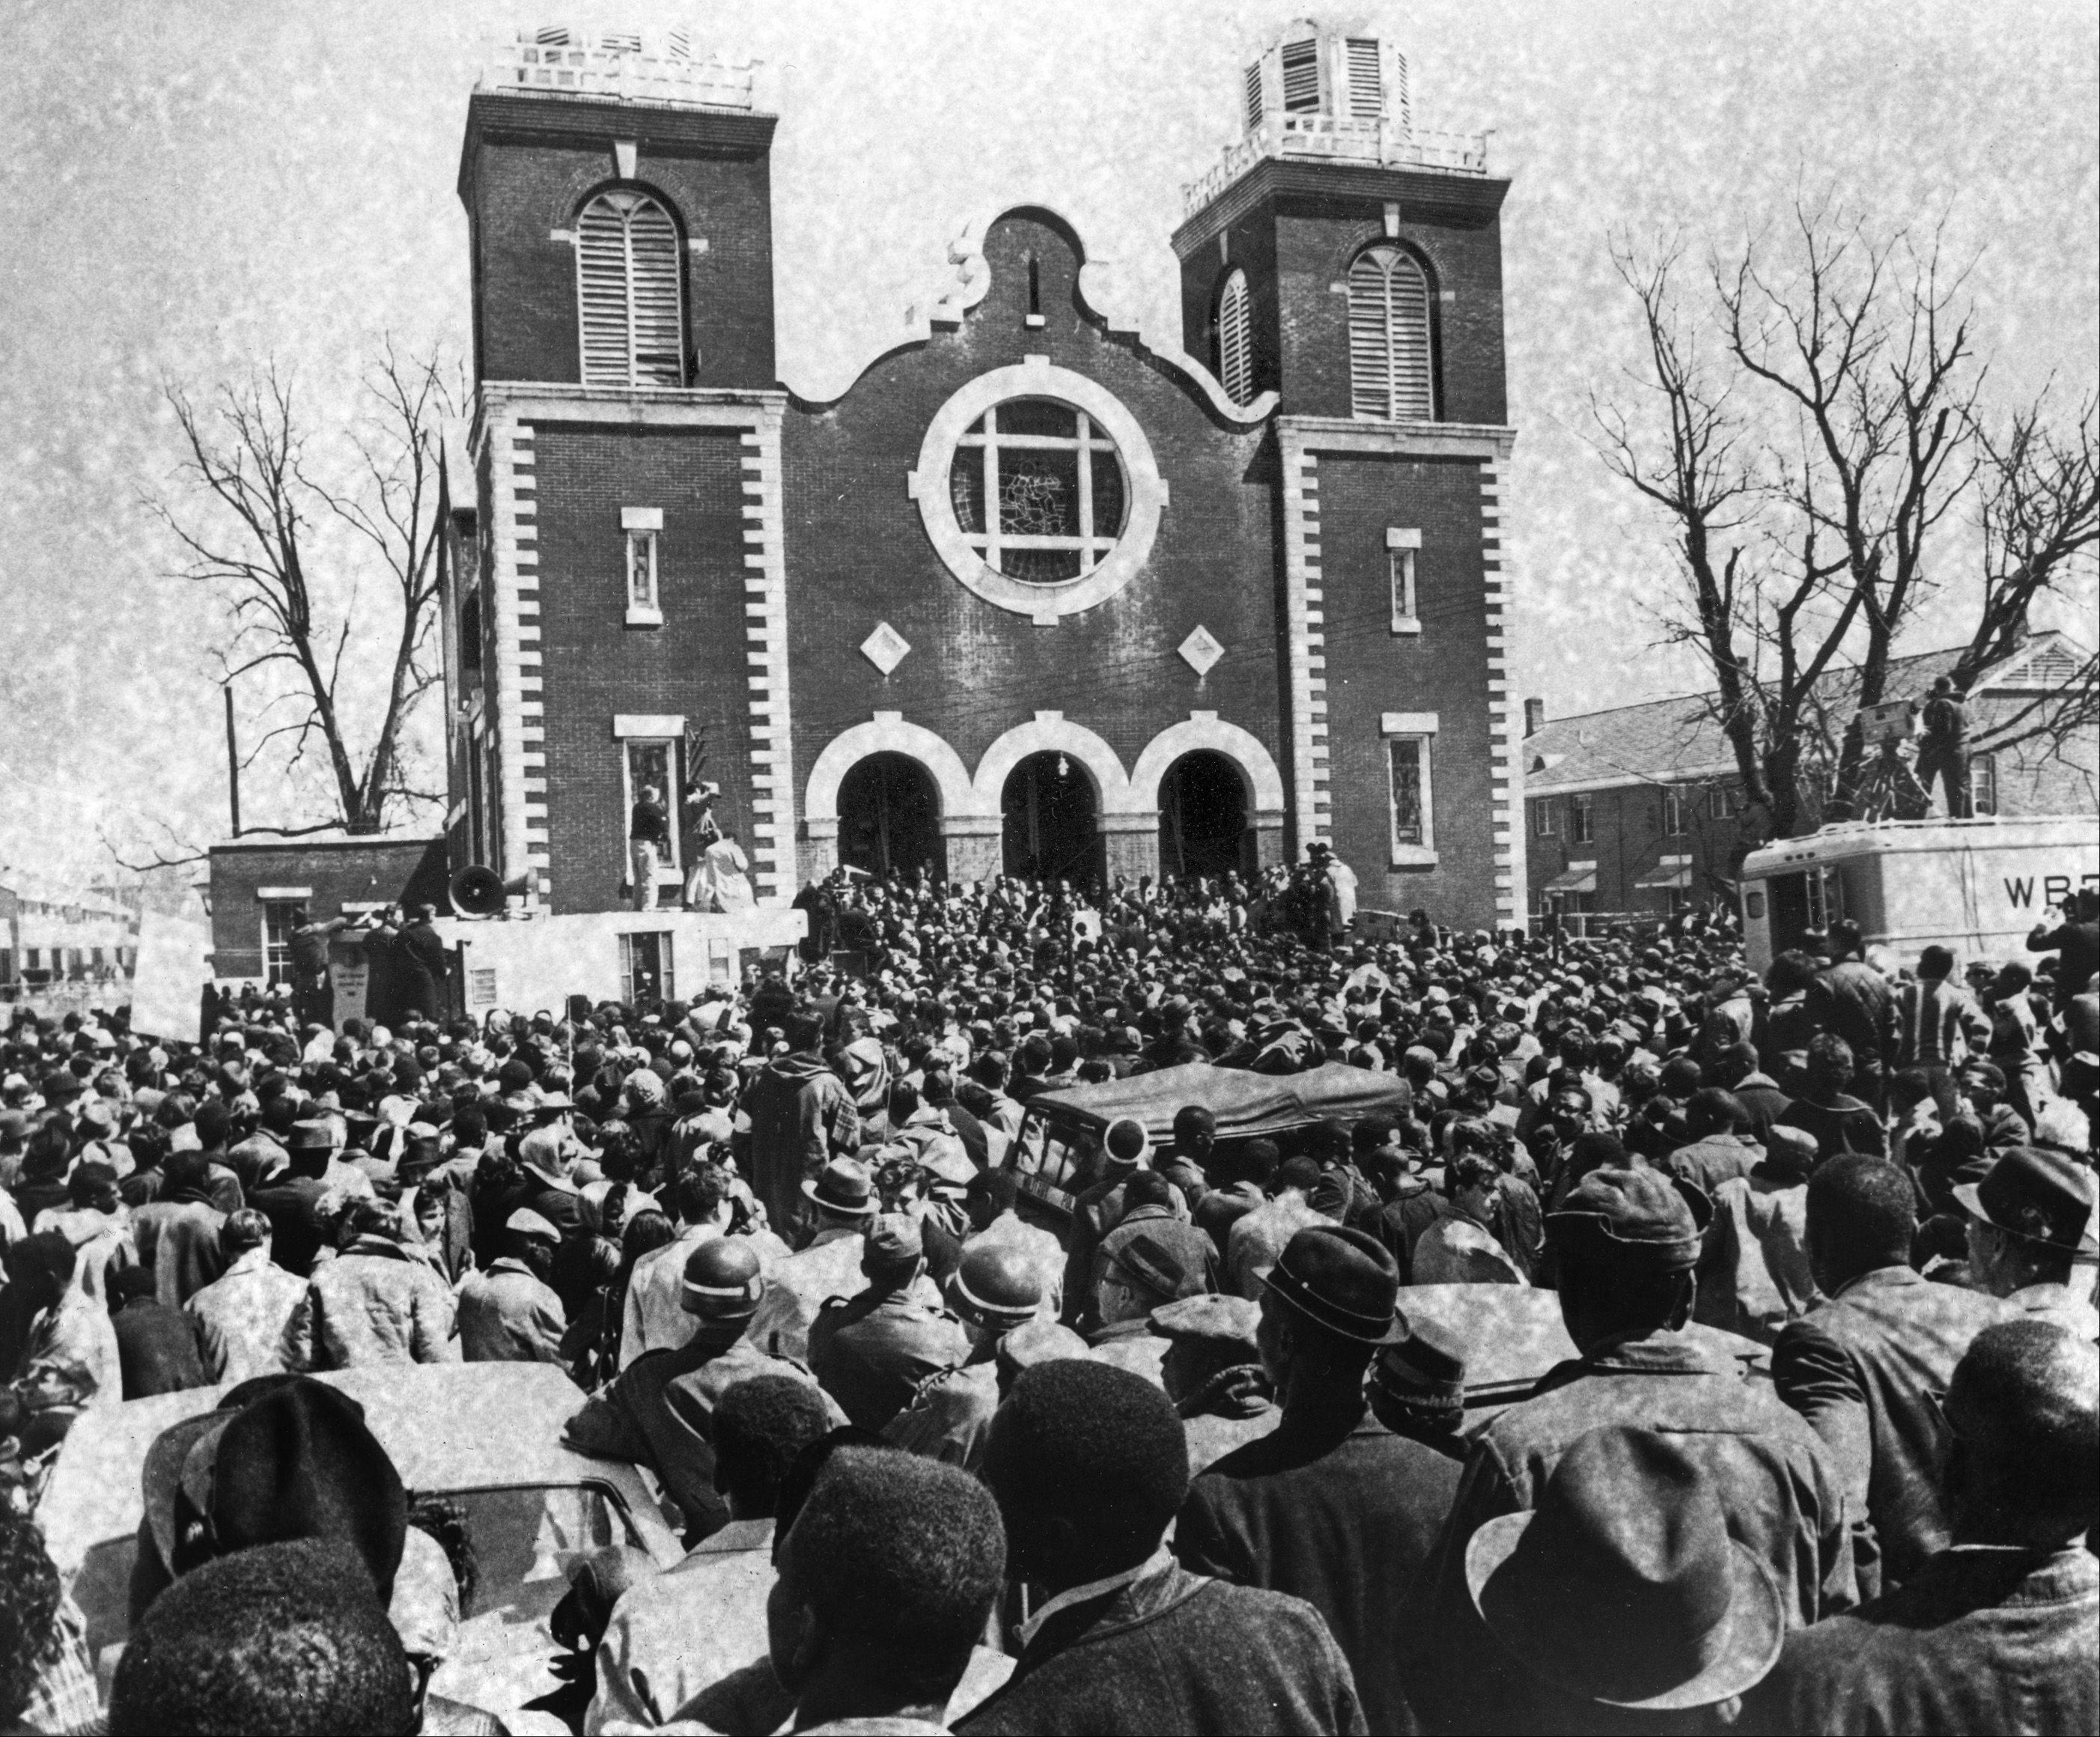 Thousands of civil rights supporters gather outside a chapel in Selma, Ala., on March 21, 1965, the start of a five-day, fifty-mile march on the Alabama state Capitol at Montgomery. The march will be led by the Reverend Dr. Martin Luther King, who spoke at this church service preceding the march. Supporters of black voting rights will march from Selma to Montgomery to protest the killing of a demonstrator by a state trooper and to improve voter registration for blacks, who are discouraged to register.